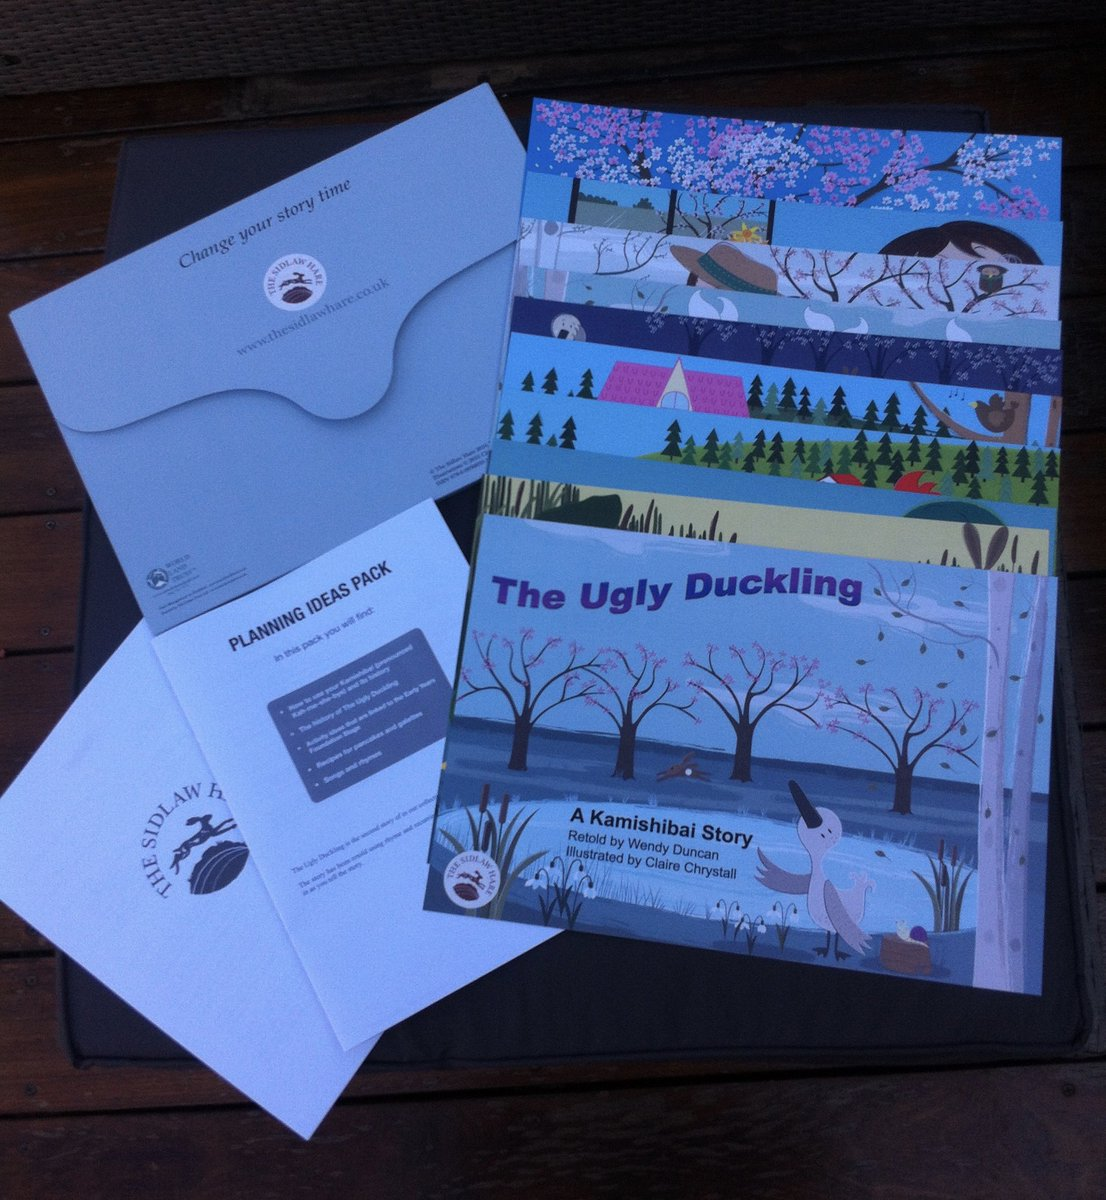 The Ugly Duckling is now available to buy £40 + P&amp;P Pls DM or email wendy@thesidlawhare.co.uk for more info #kamishibai #htlmp #lovereading<br>http://pic.twitter.com/rJXFrk82DR